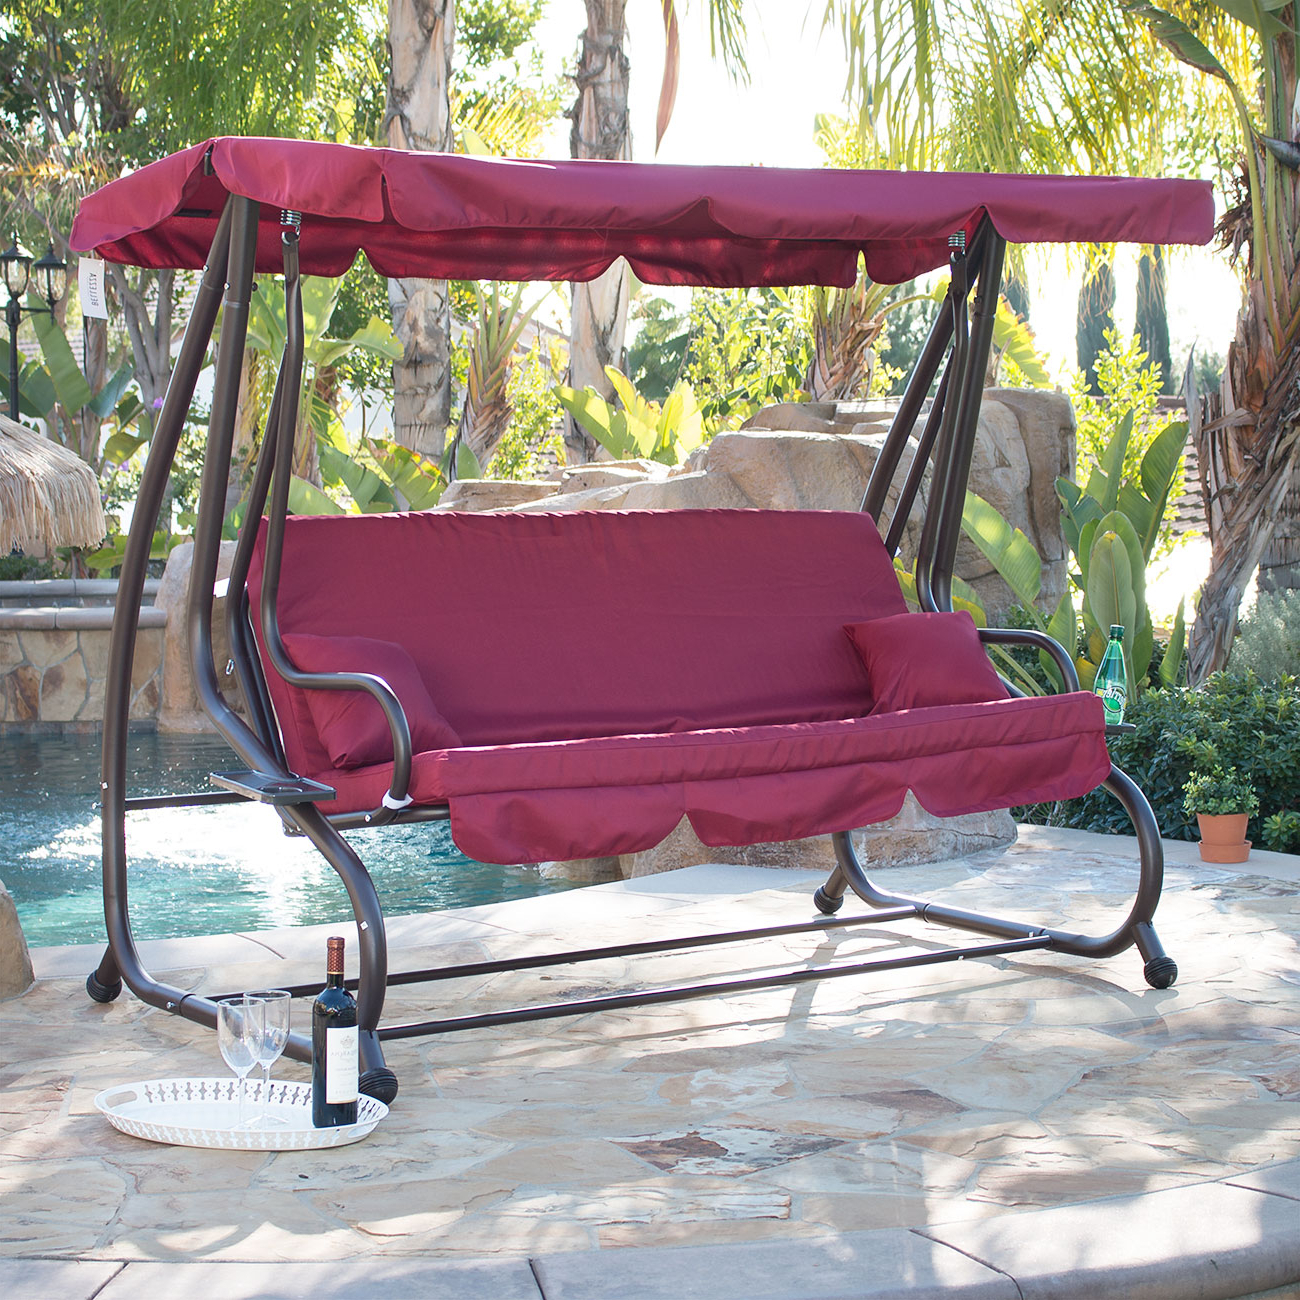 Details About Outdoor Swing / Bed Patio Adjustable Canopy Deck Porch Seat Chair W/ (2) Pillow For Well Known Canopy Patio Porch Swings With Pillows And Cup Holders (View 4 of 25)